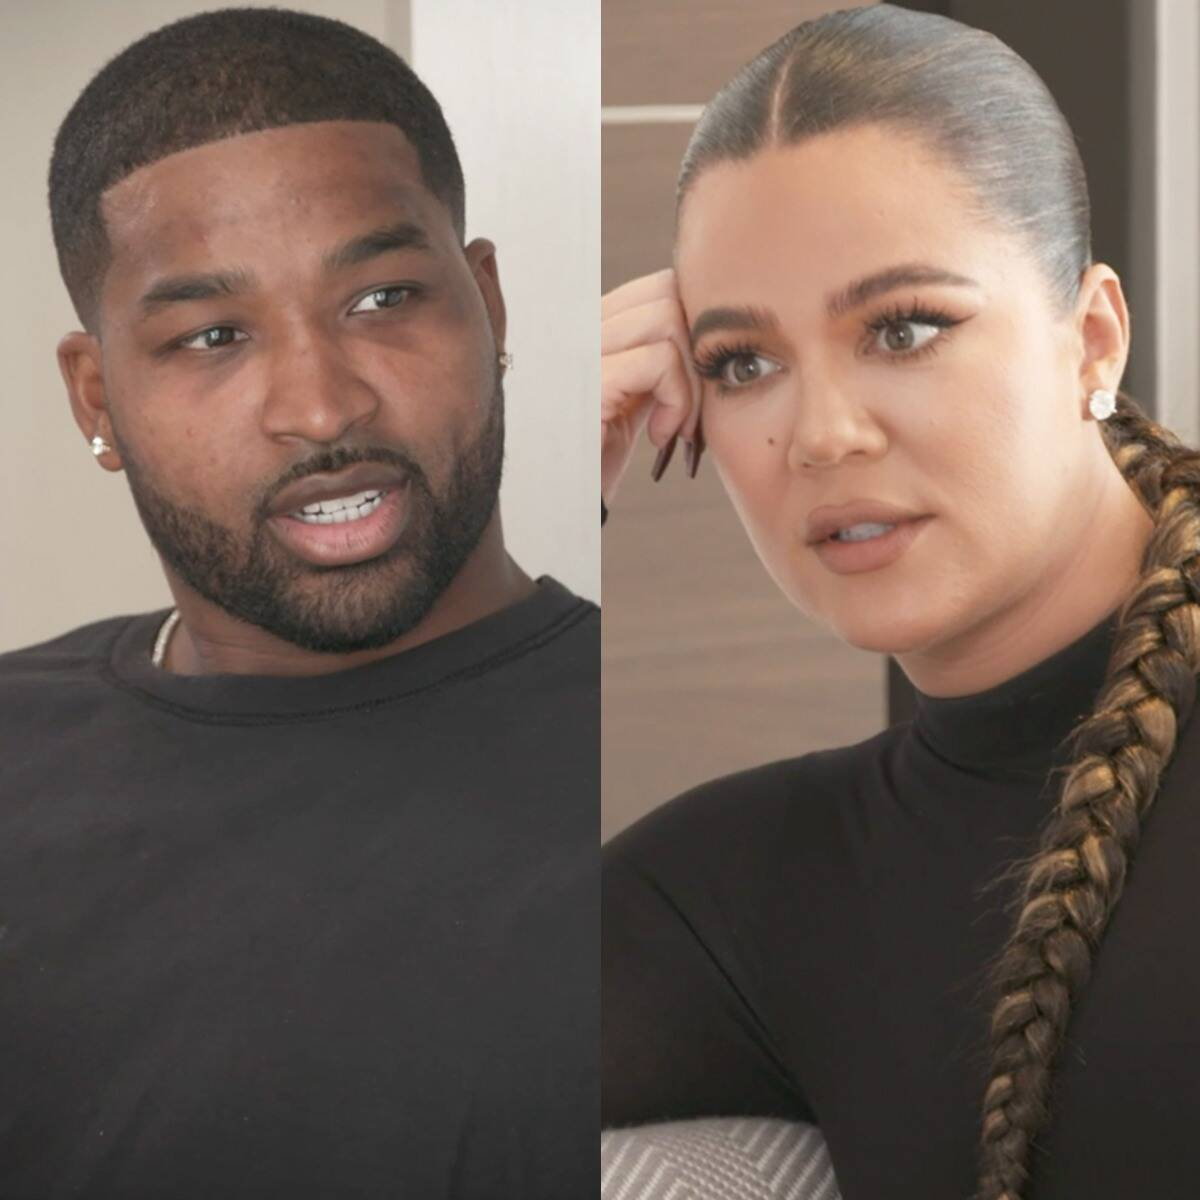 khloe-kardashian-and-tristan-thompson-talk-surrogacy-in-new-teaser-for-the-final-kuwtk-season